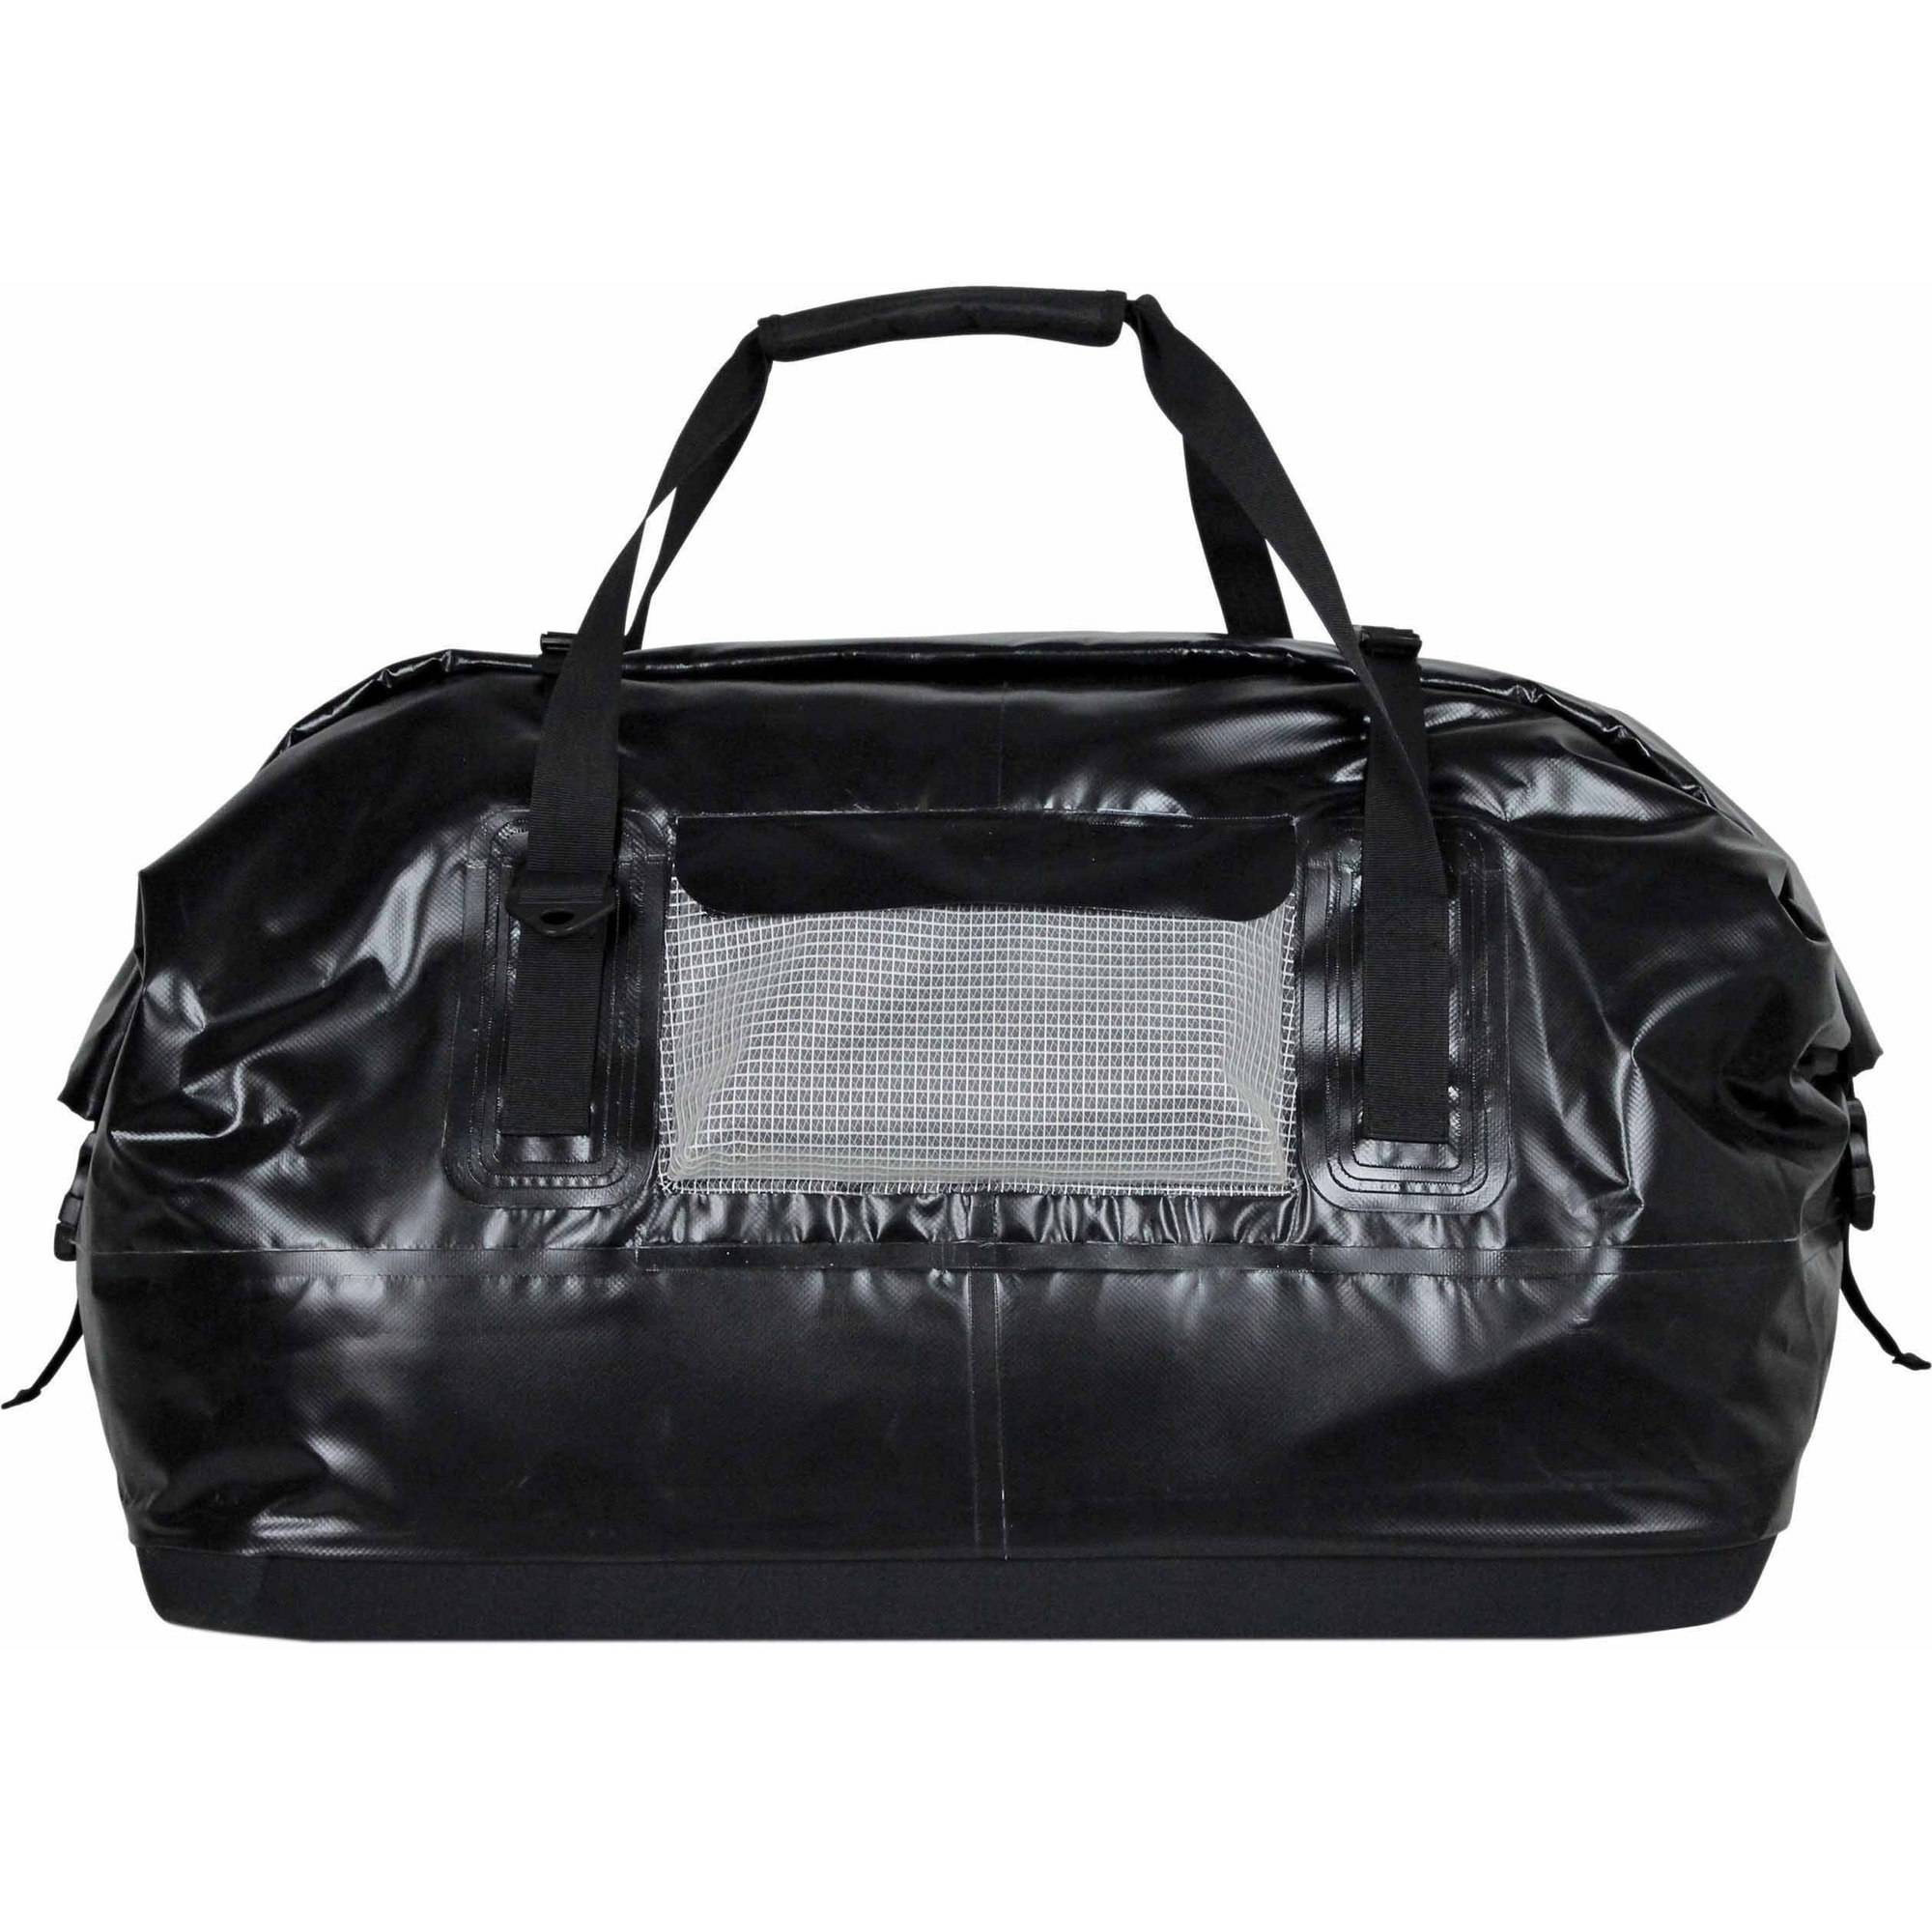 Extreme Max Dry Tec Large/110-Liter Waterproof Roll-Top Duffel Bag, Black